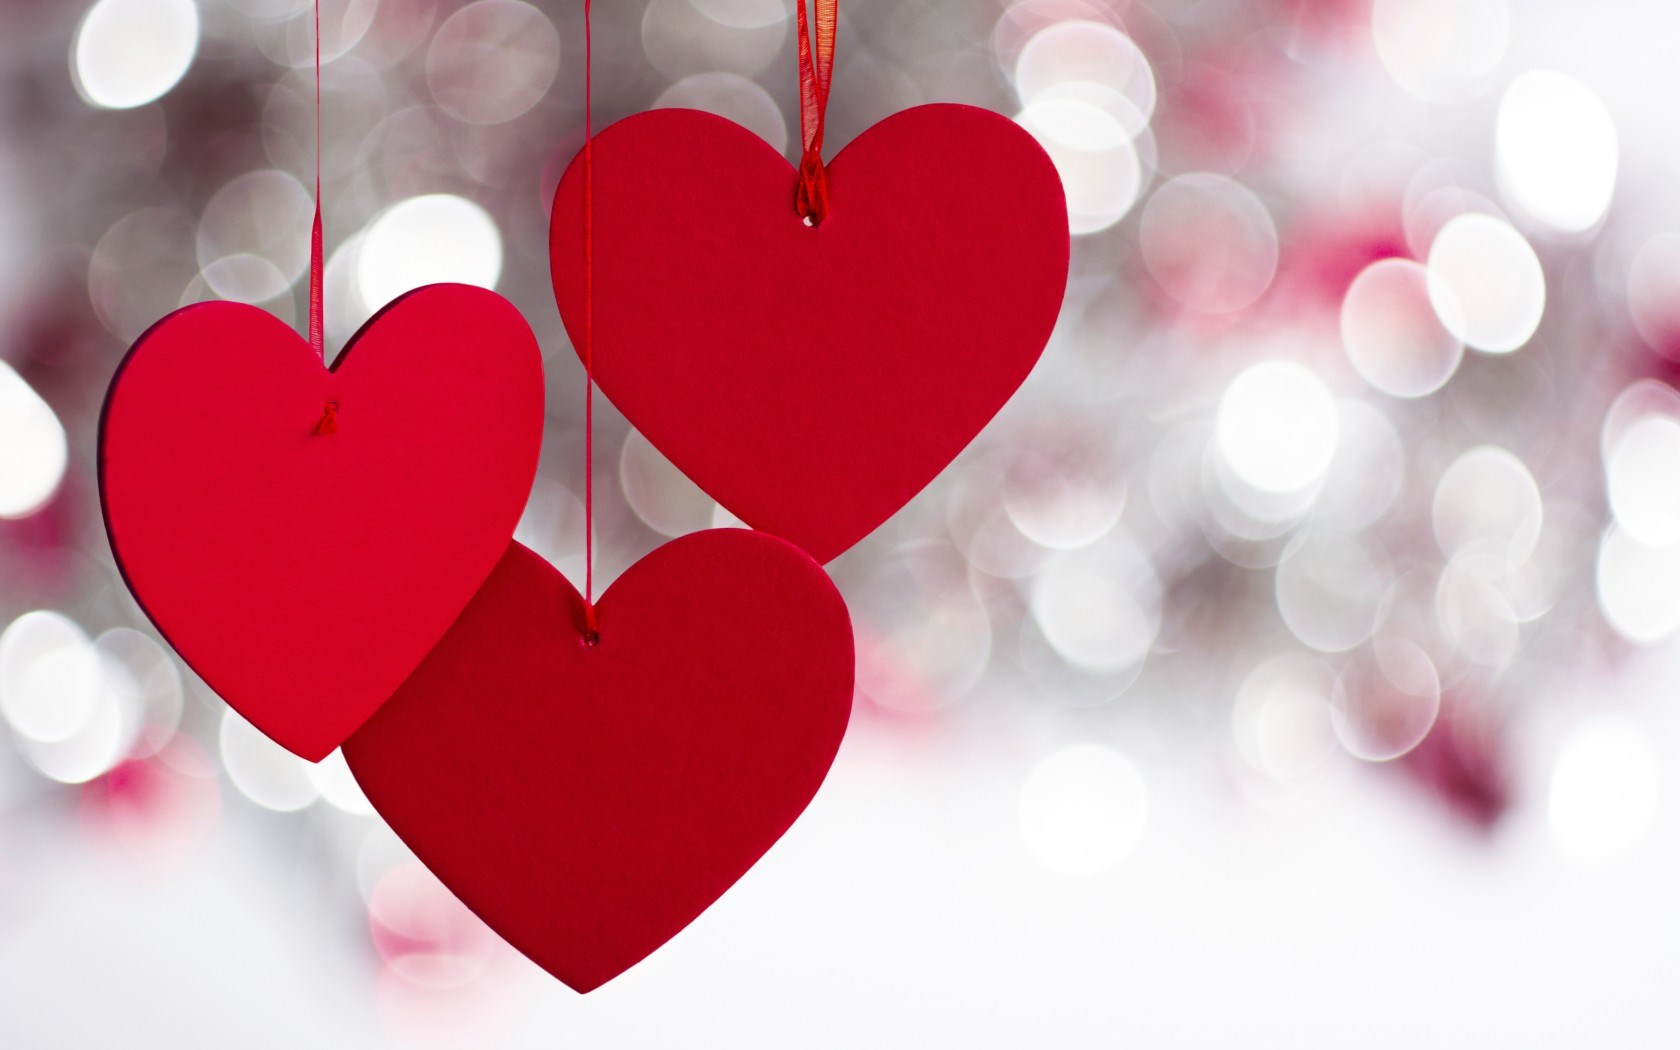 red-hearts-sparkle-lovely-valentine-day-bokeh-photo-love-hd-wallpaper